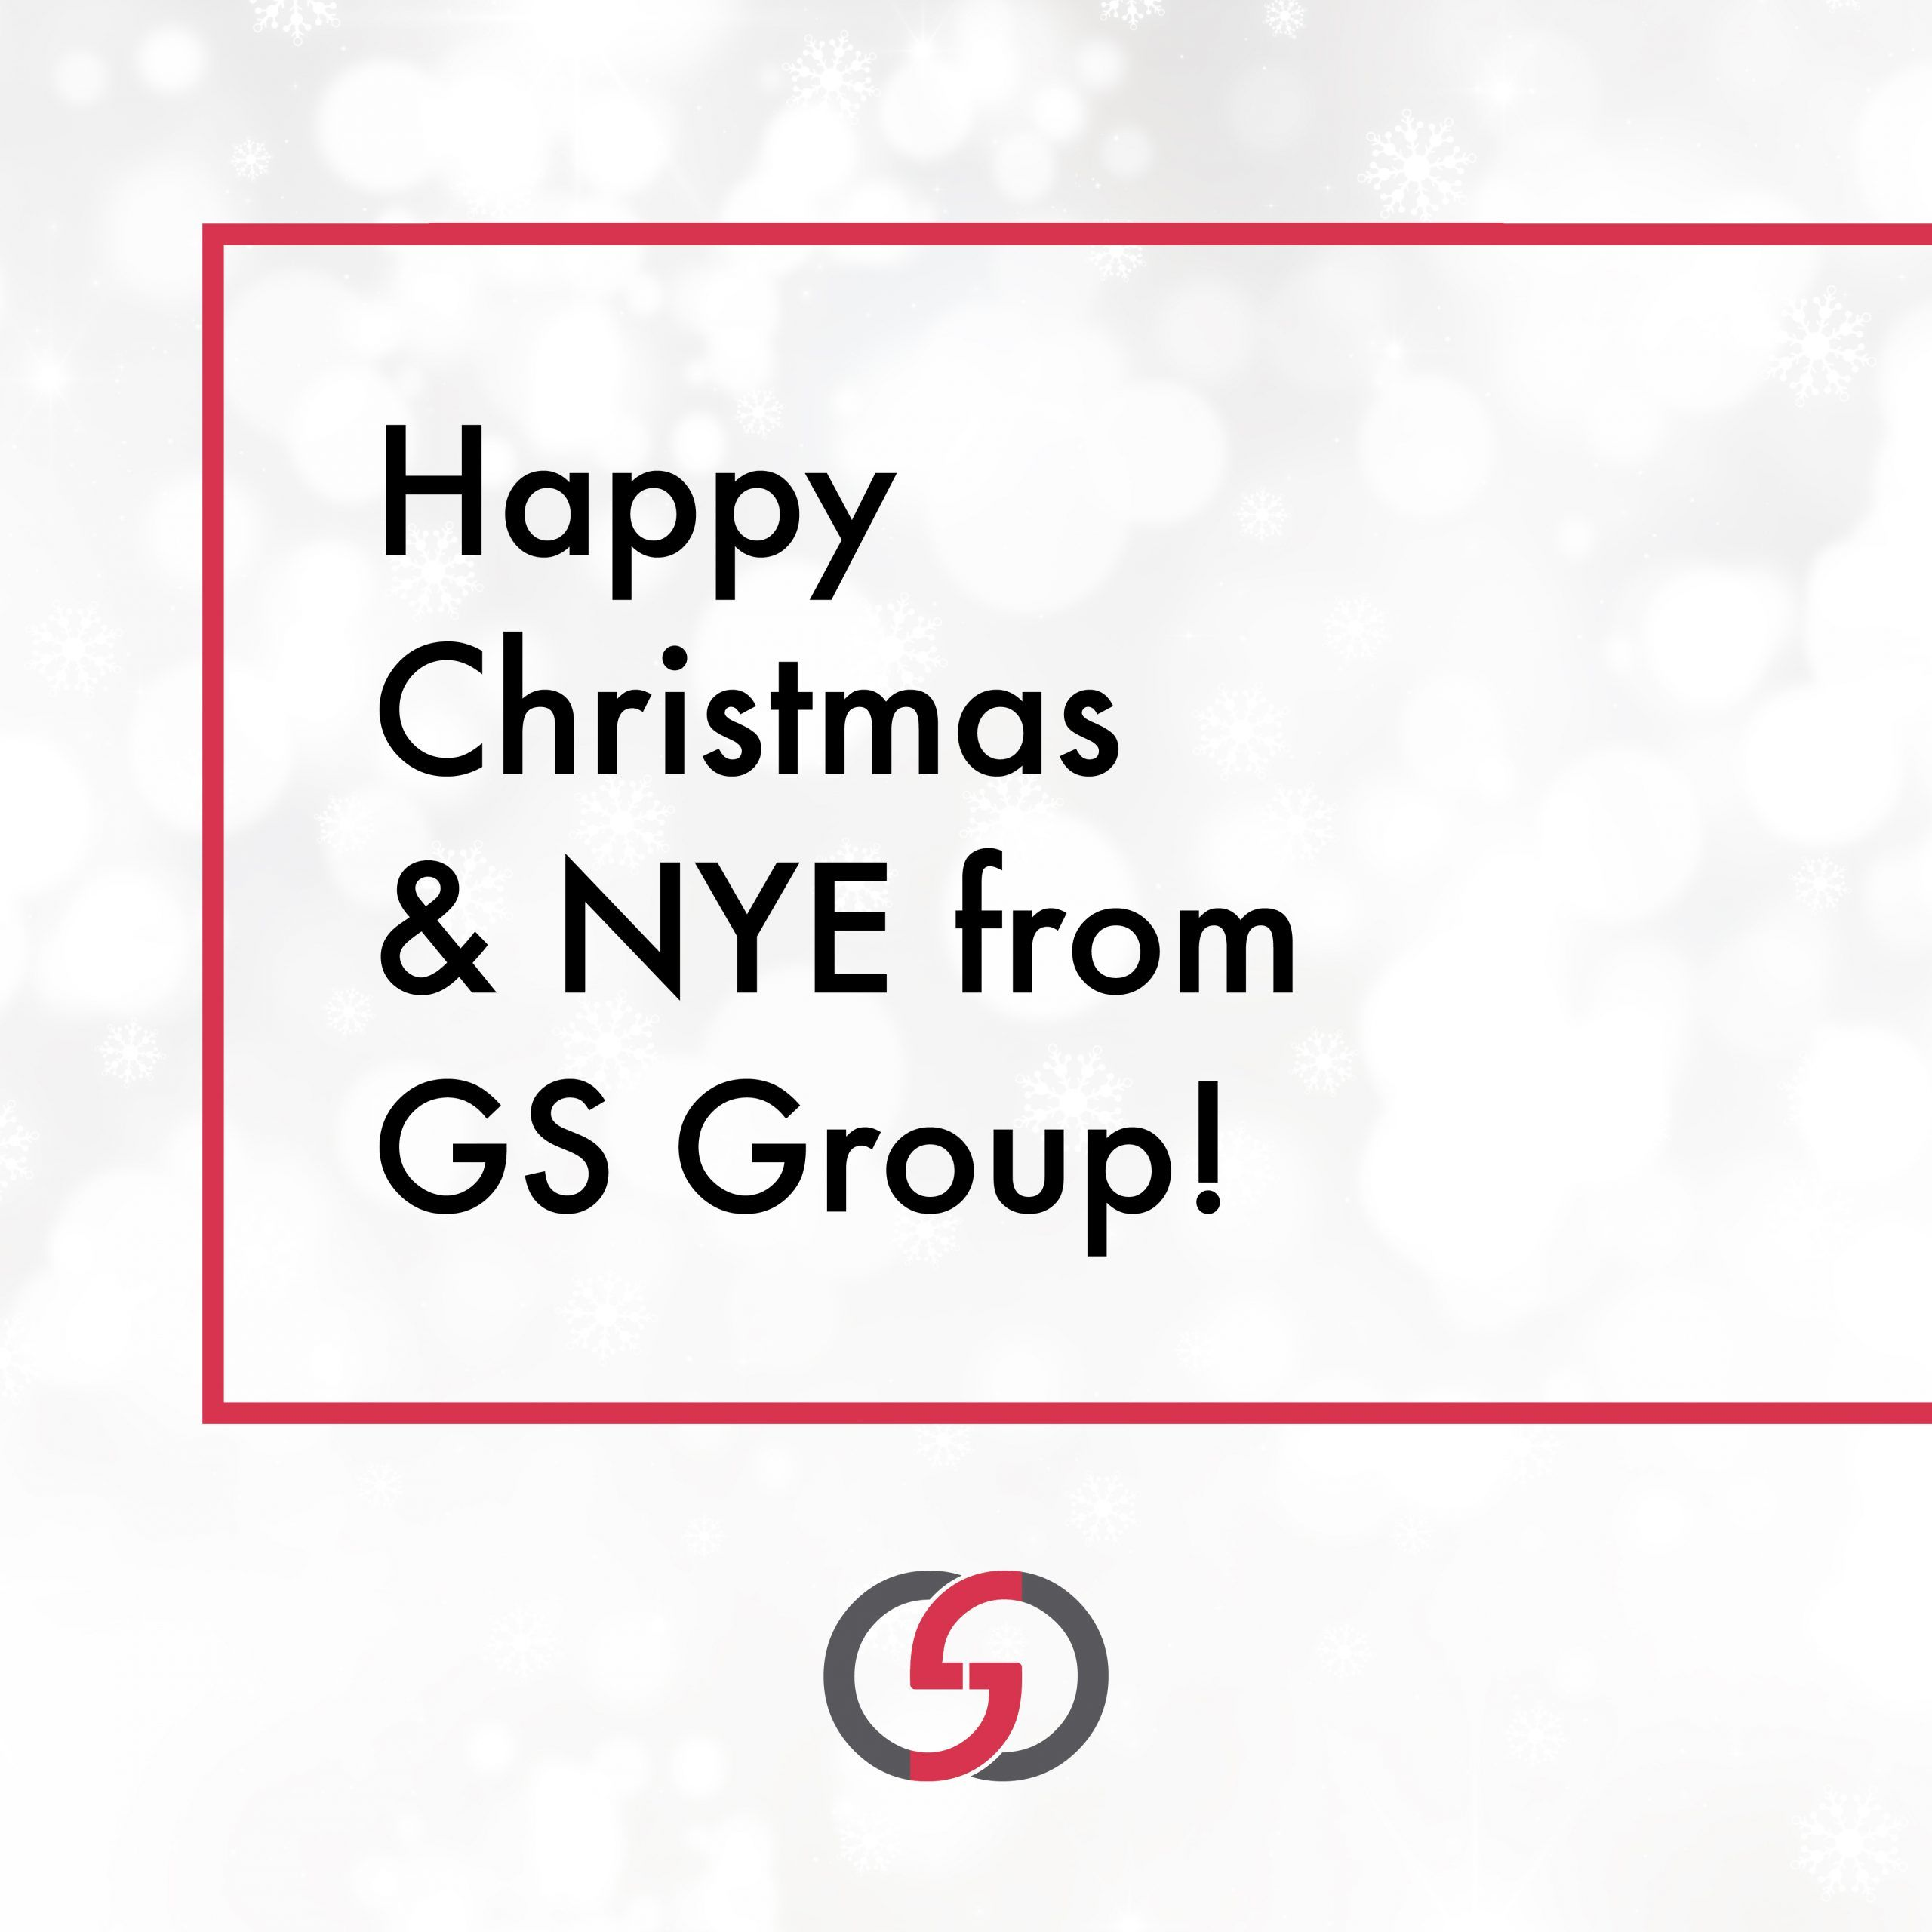 Merry Christmas from GS Group!